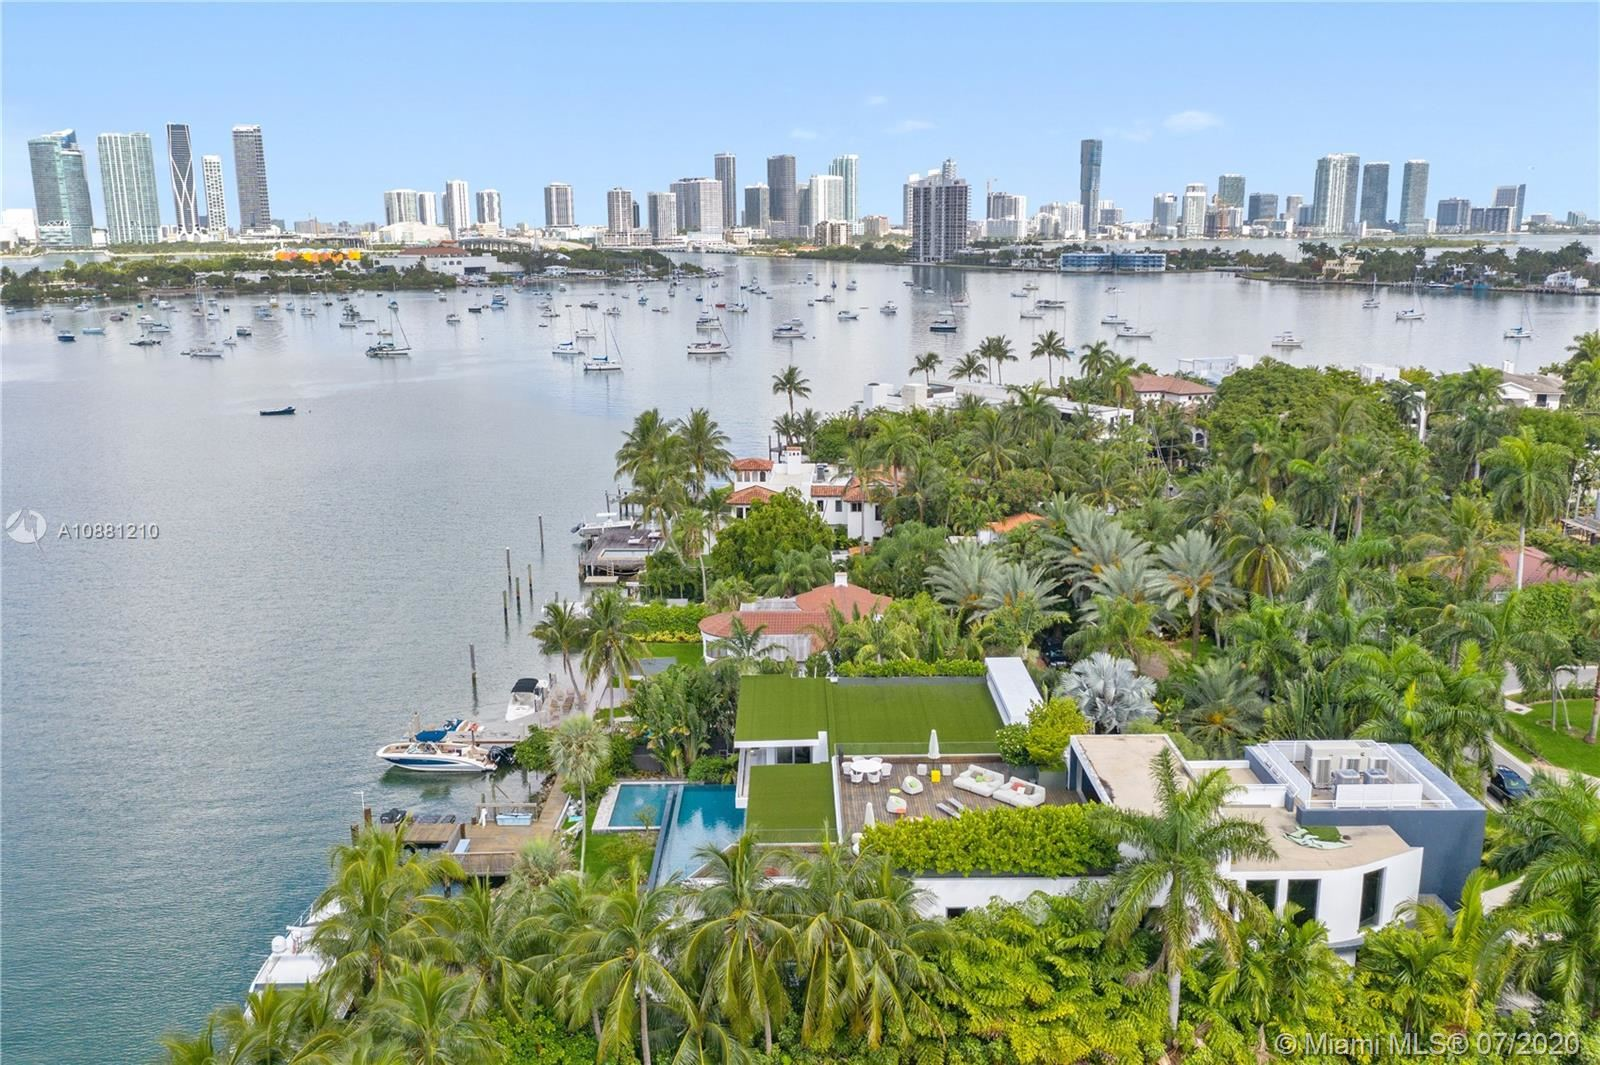 Photo 45 of Listing MLS a10881210 in 370 S Hibiscus Dr Miami Beach FL 33139